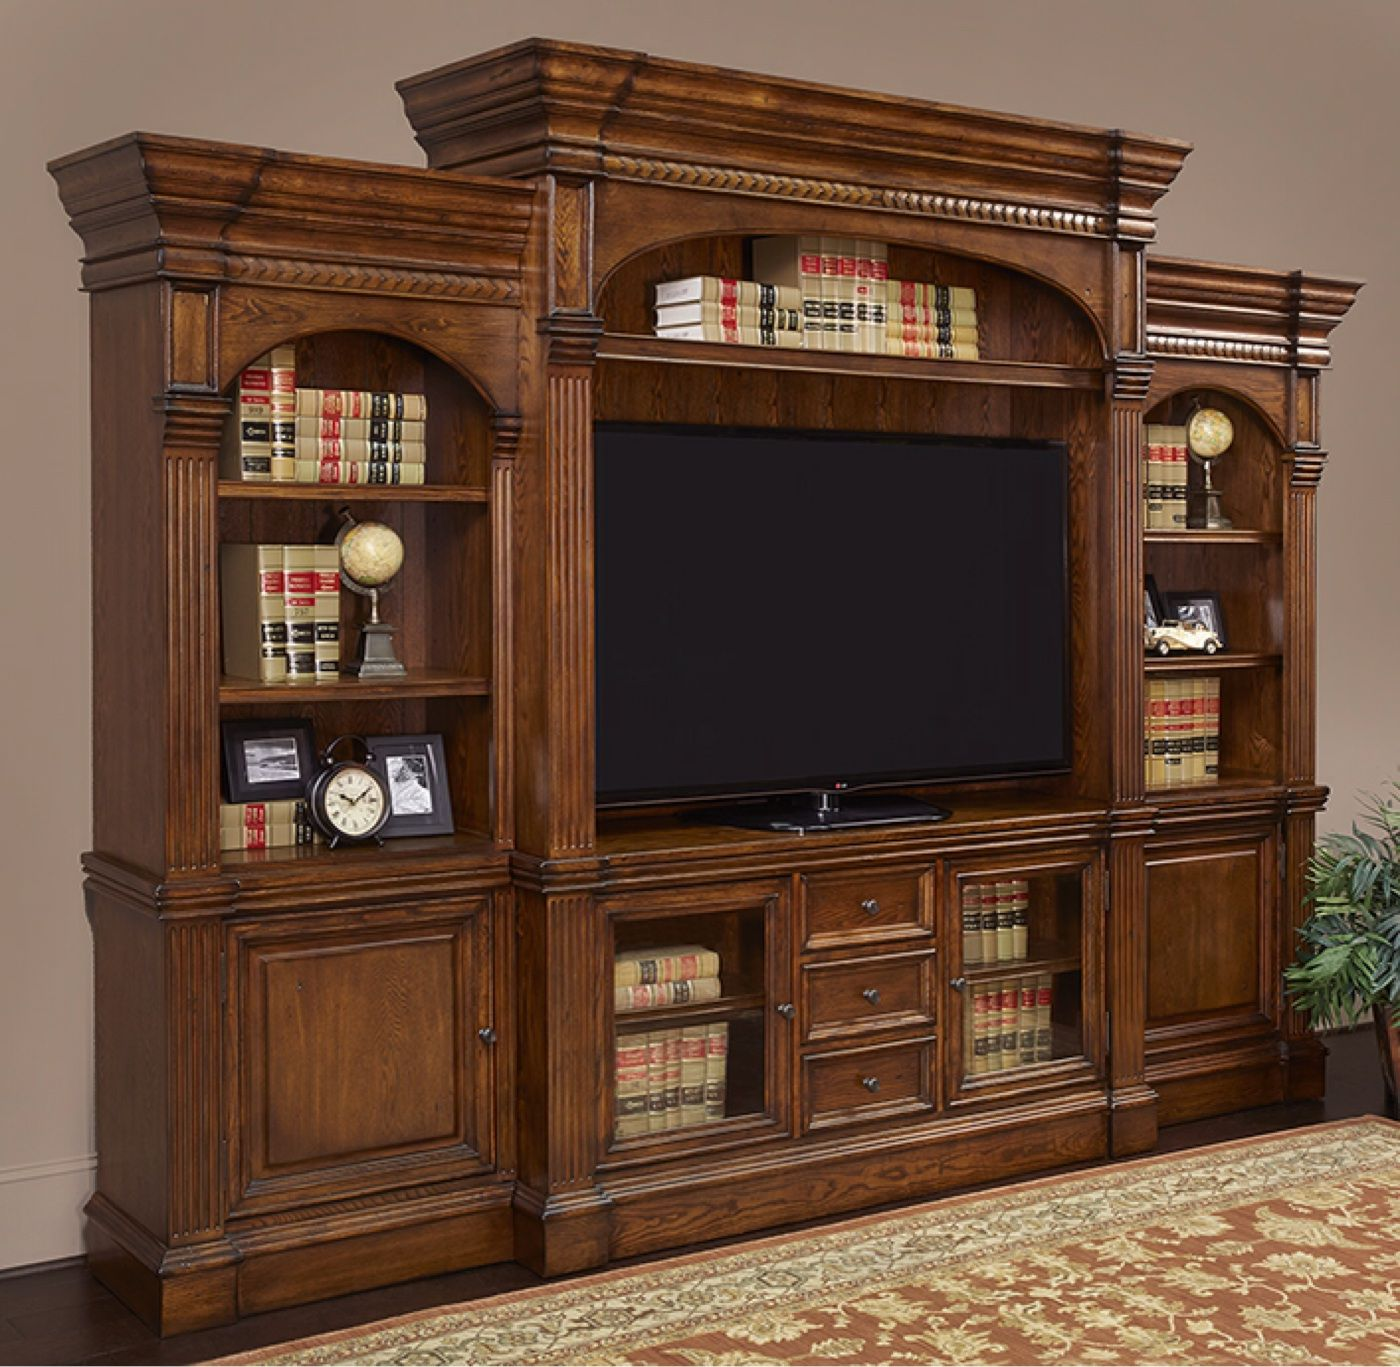 A Wall Media Entertainment Center Like This Deserves A Special